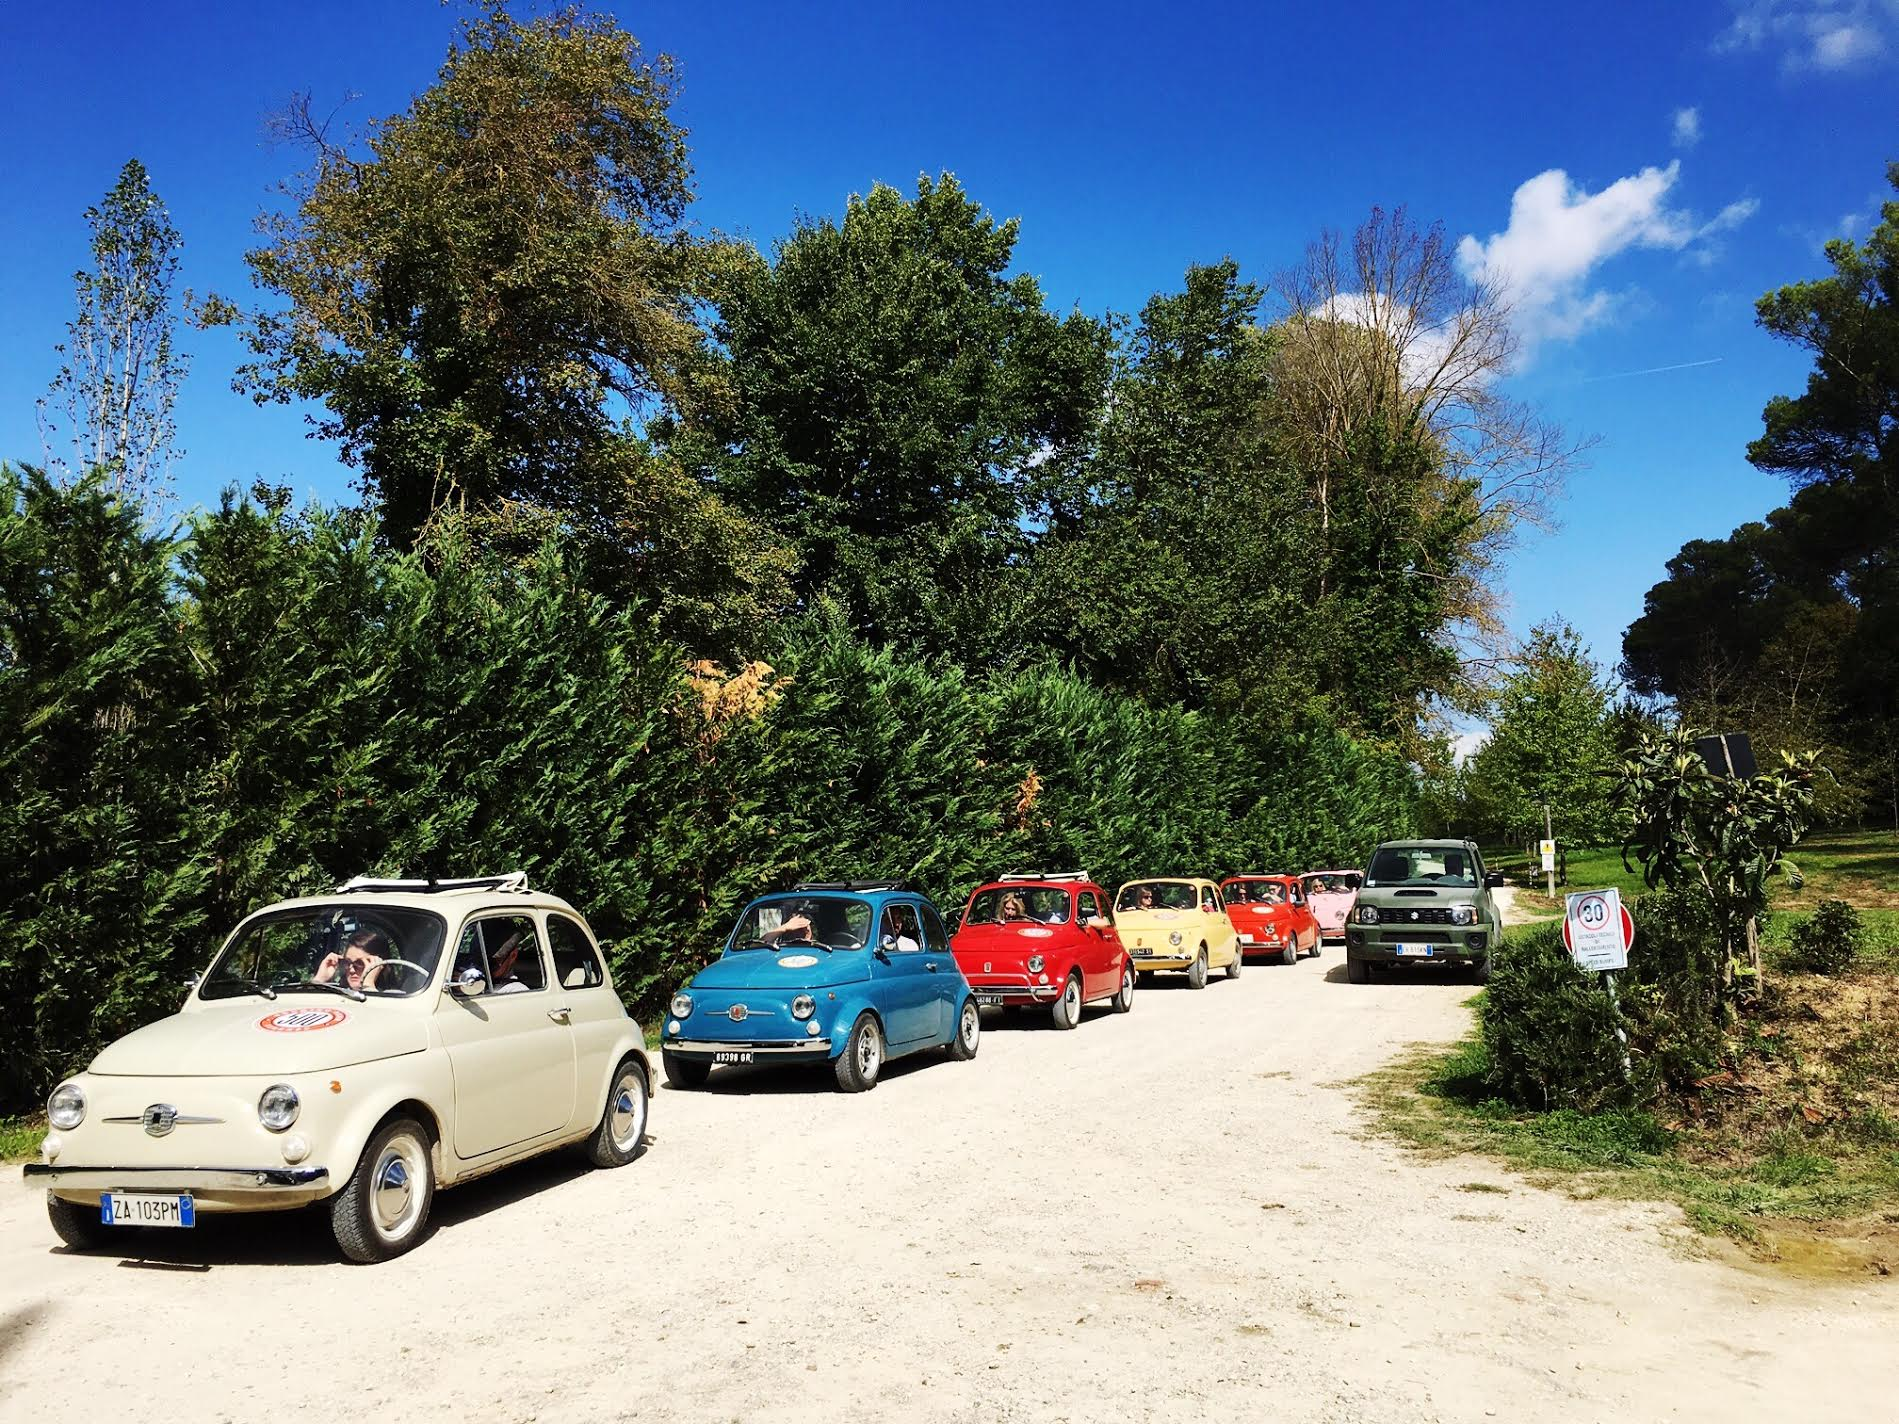 Touring Tuscany in a Fiat 500 with 500 Touring Club. More on Earth Below Girls, female travel & lifestyle blog featuring travel tips & food recommendation.